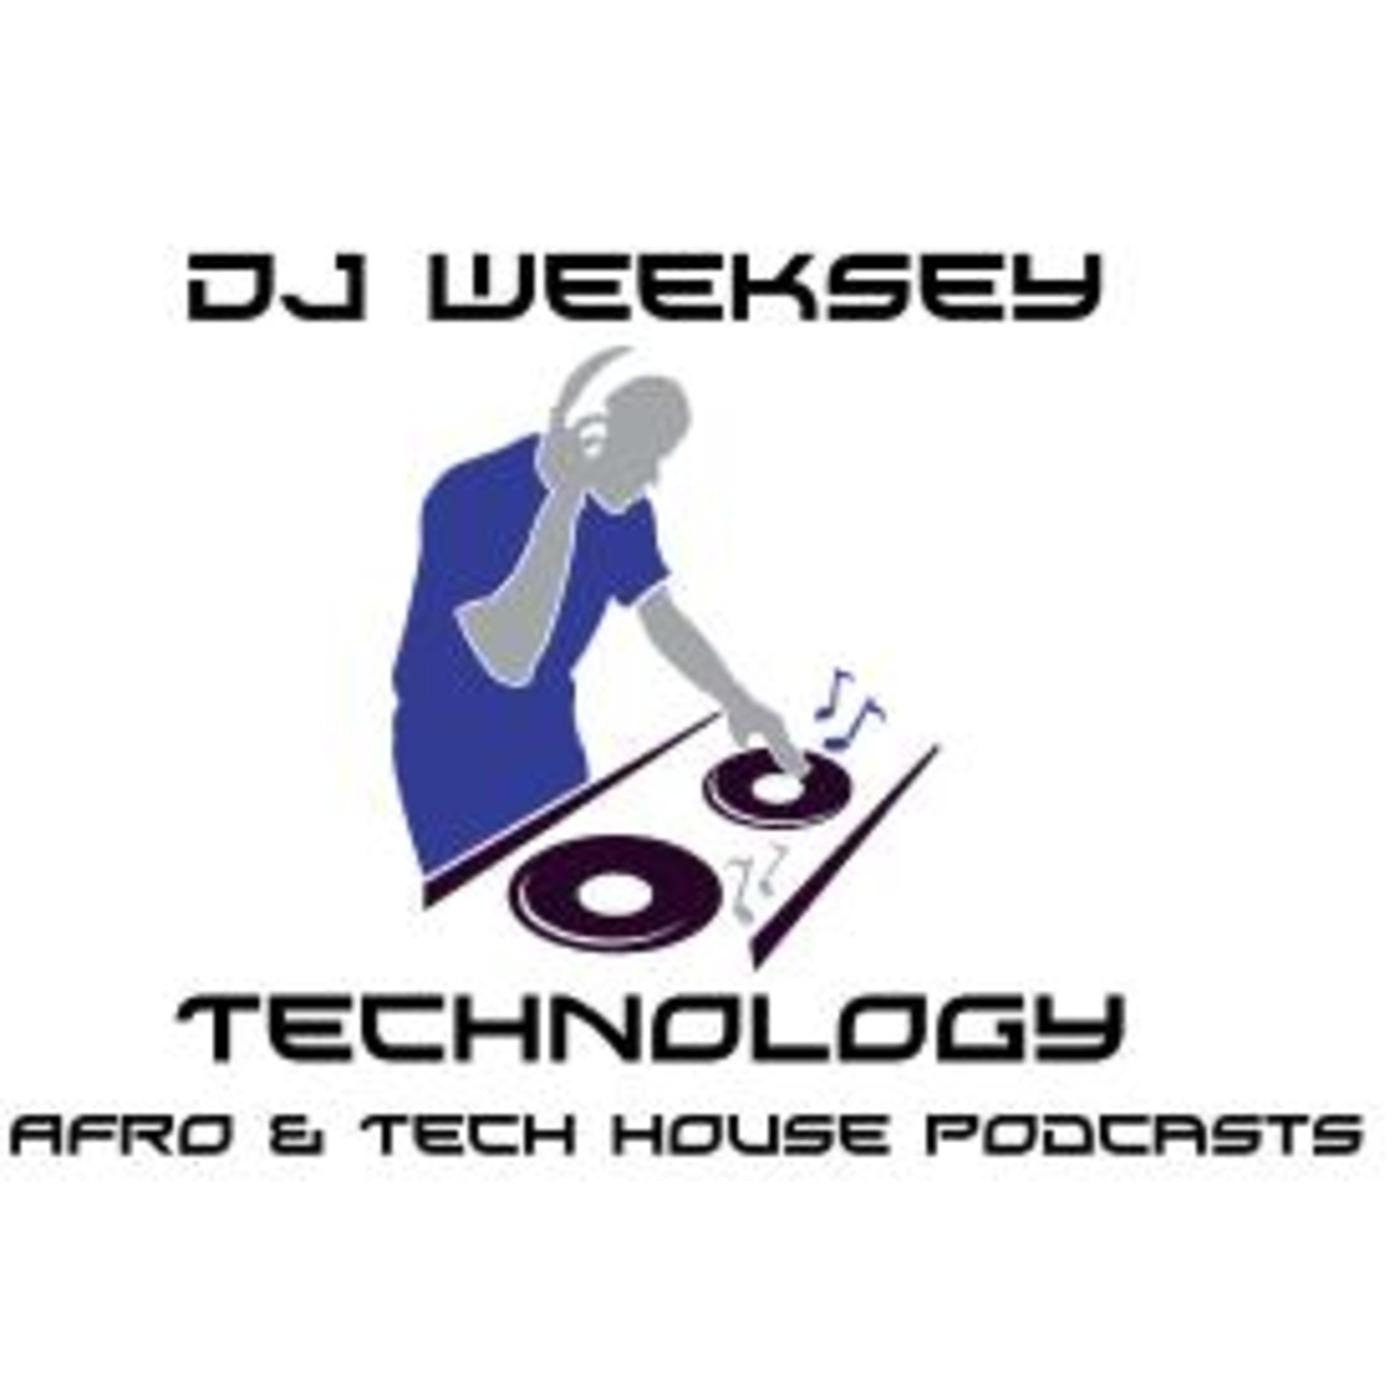 DJ Weeksey Techno, Tech House  Mixes & Podcasts